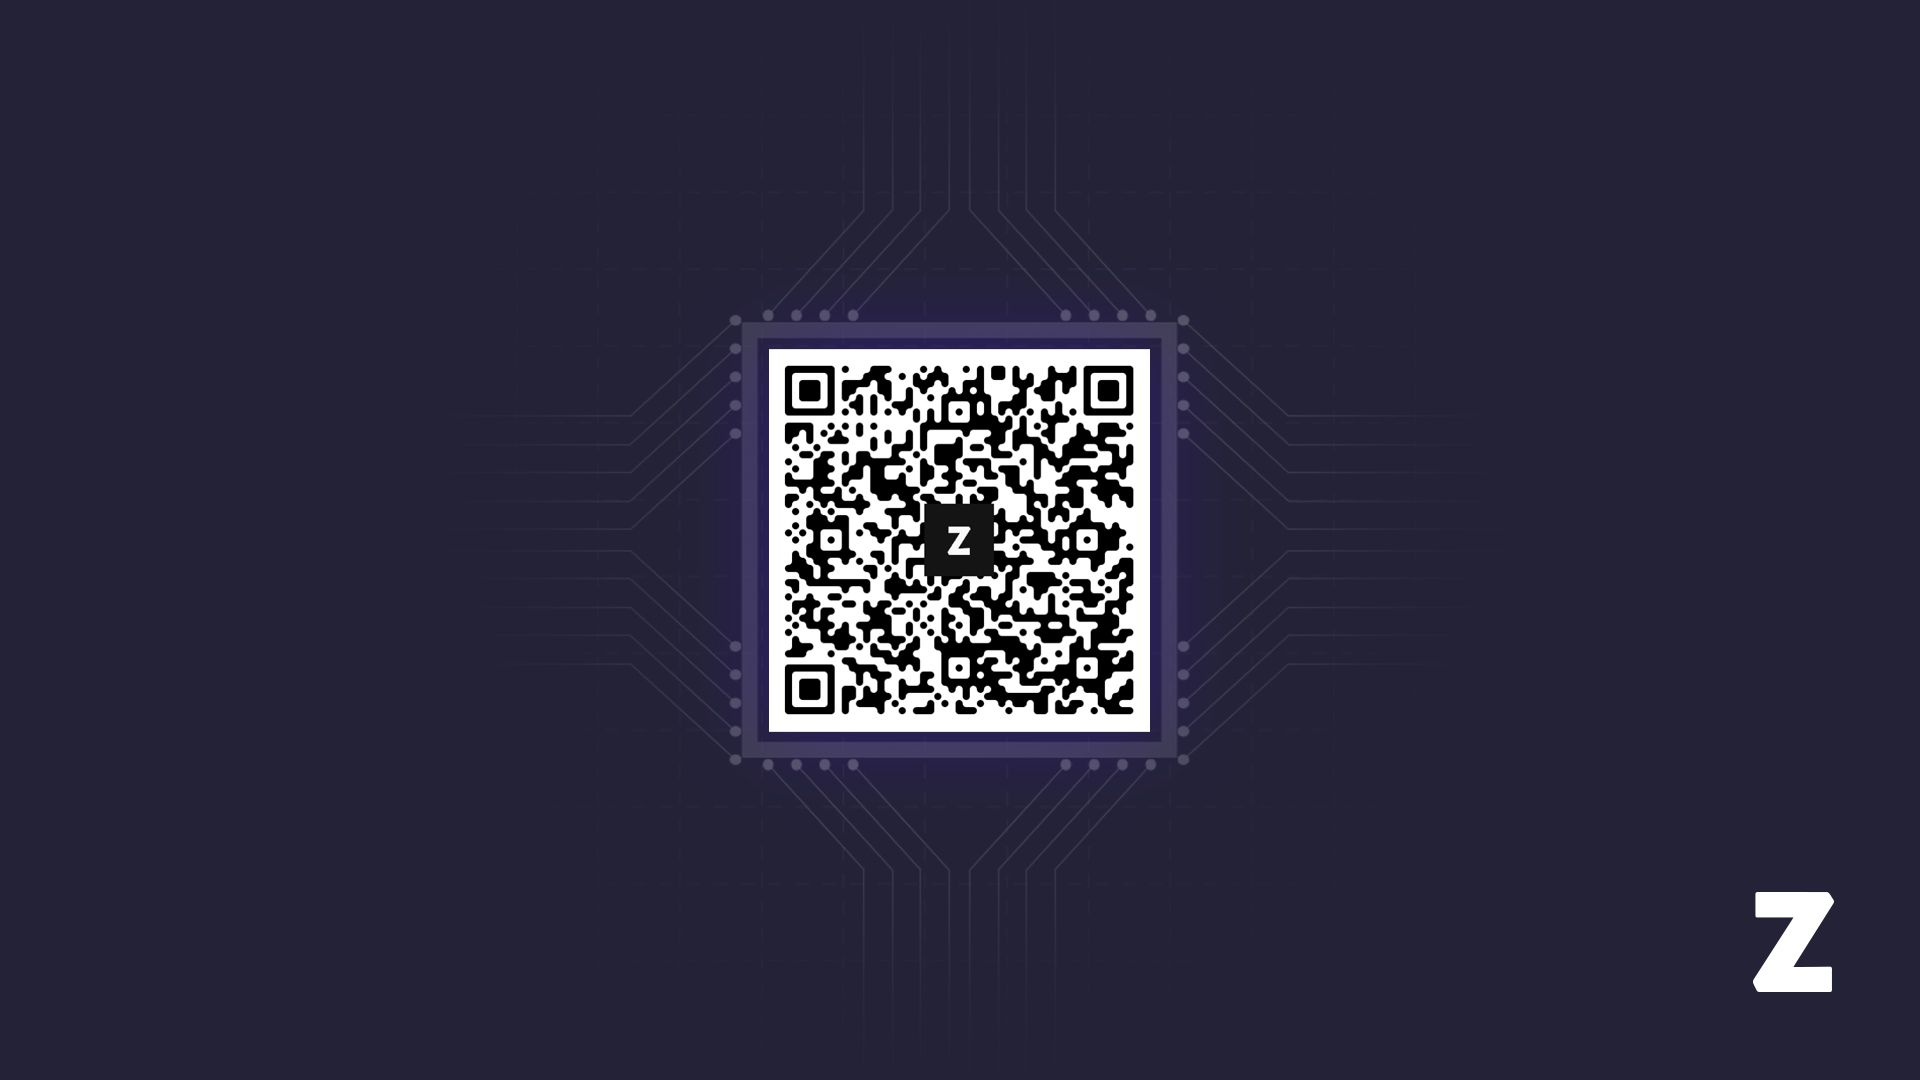 To send Sats, type in the recipient's Gamertag or simply scan their QR code